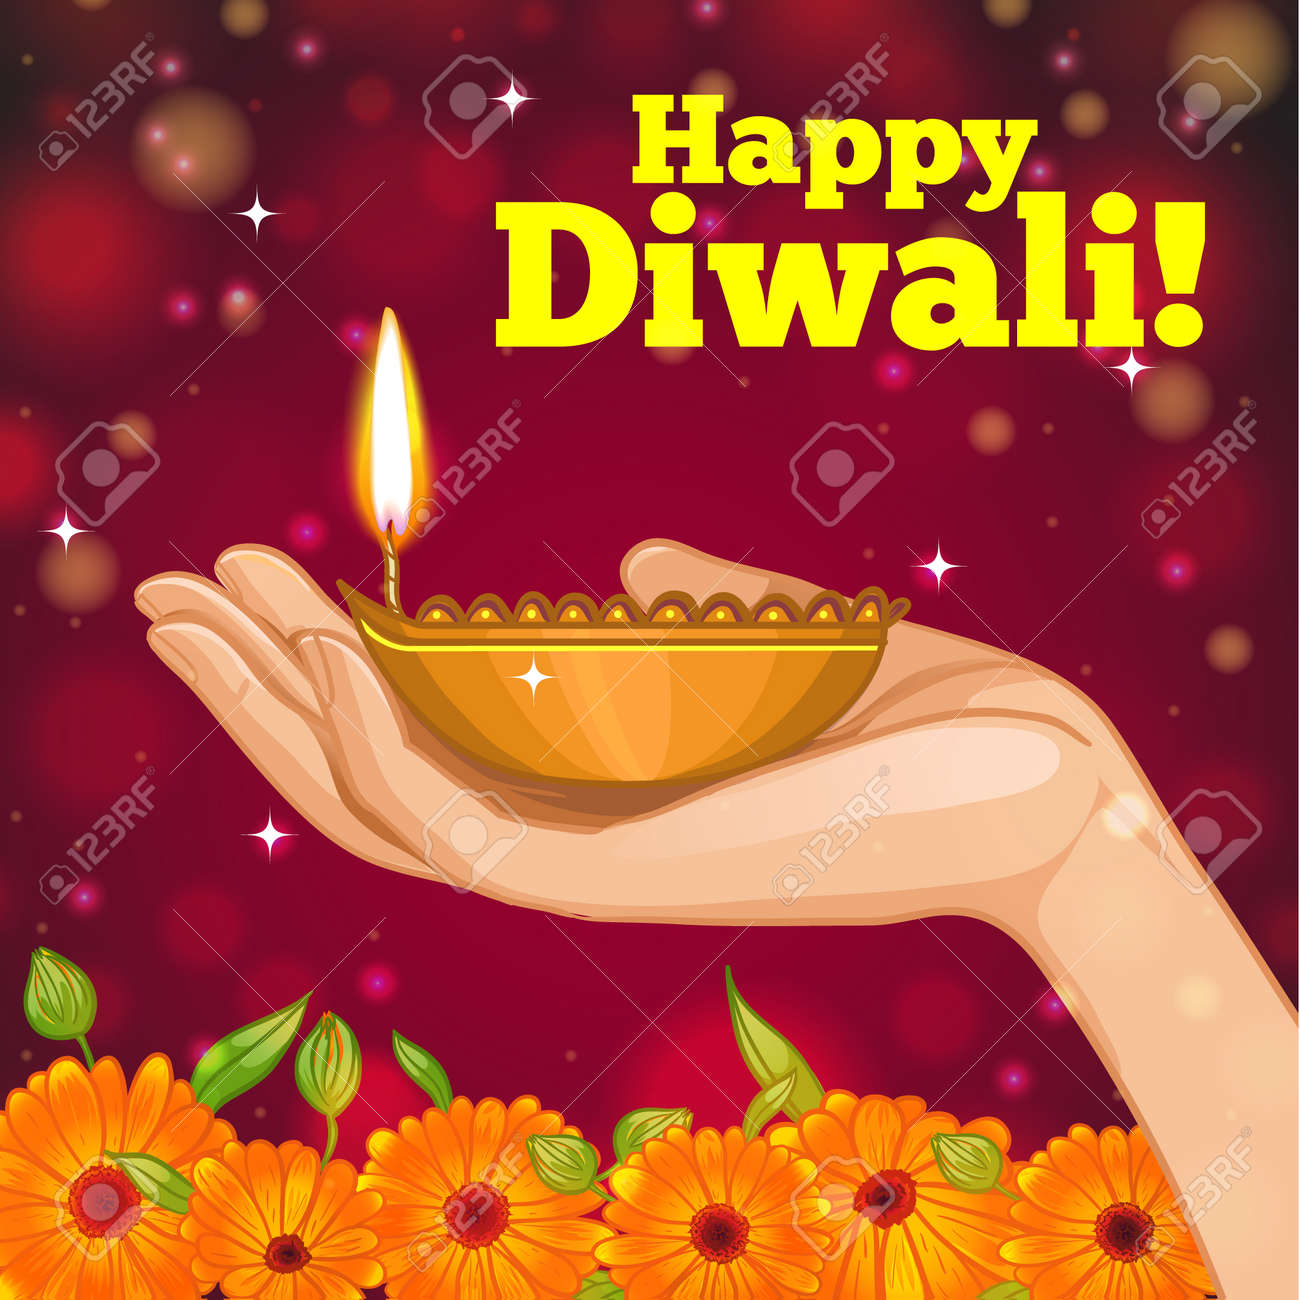 Greeting card for diwali with diya decoration in hand vector greeting card for diwali with diya decoration in hand vector image eps10 stock vector kristyandbryce Images